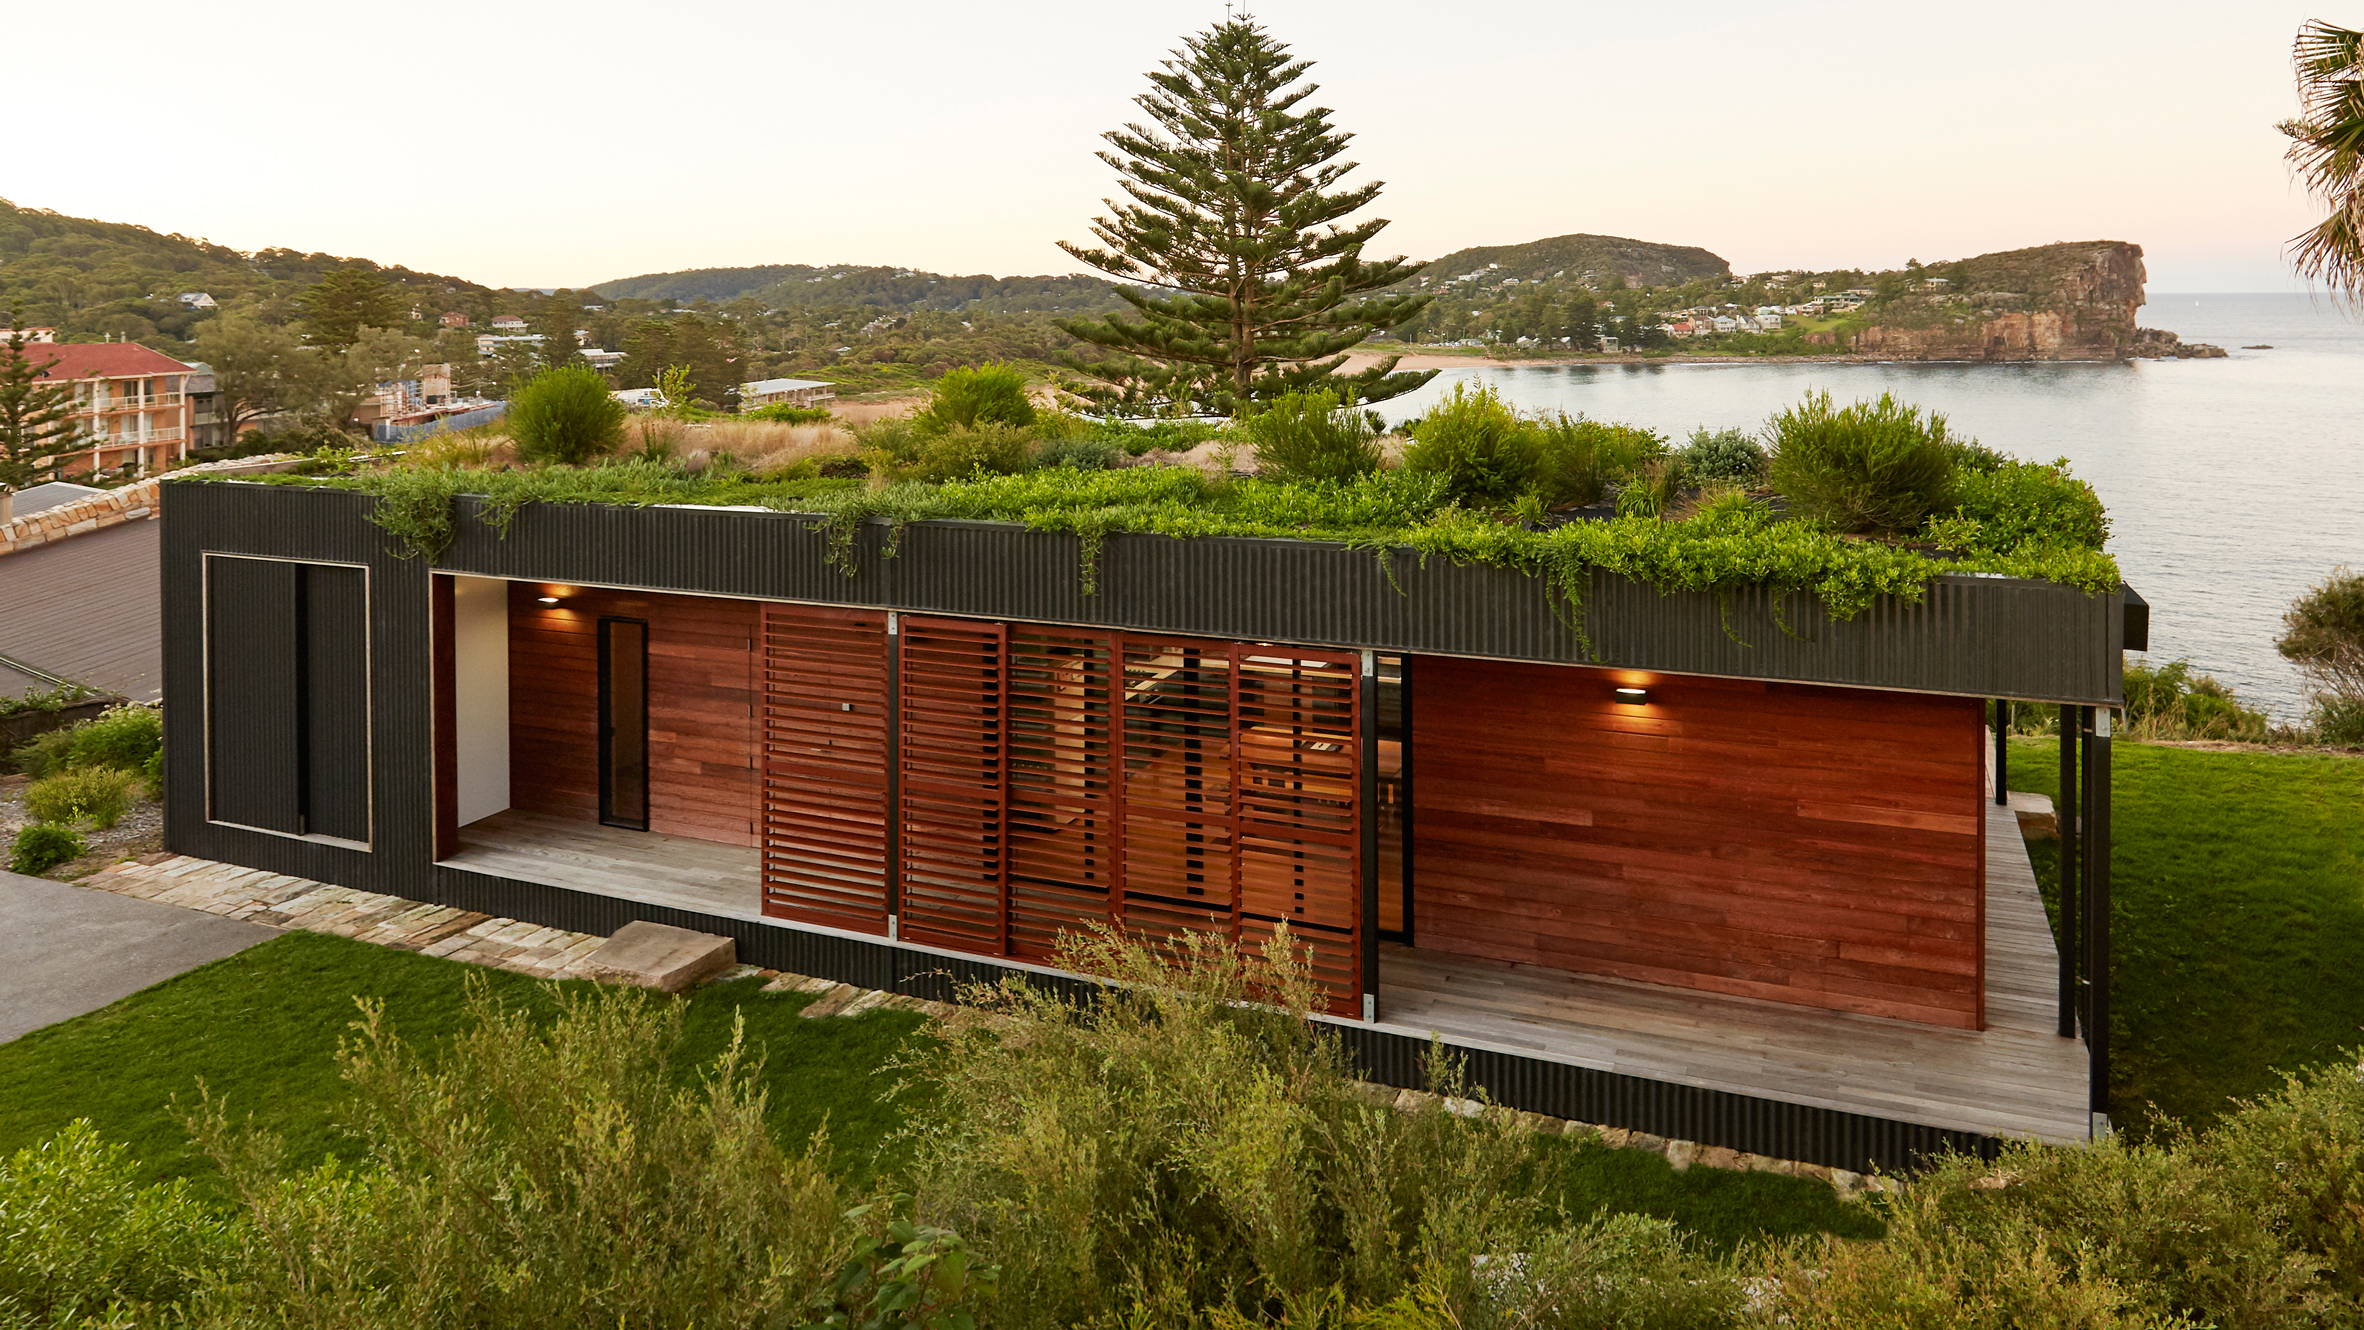 ArchiBlox creates garden roof for house overlooking a beach in Australia